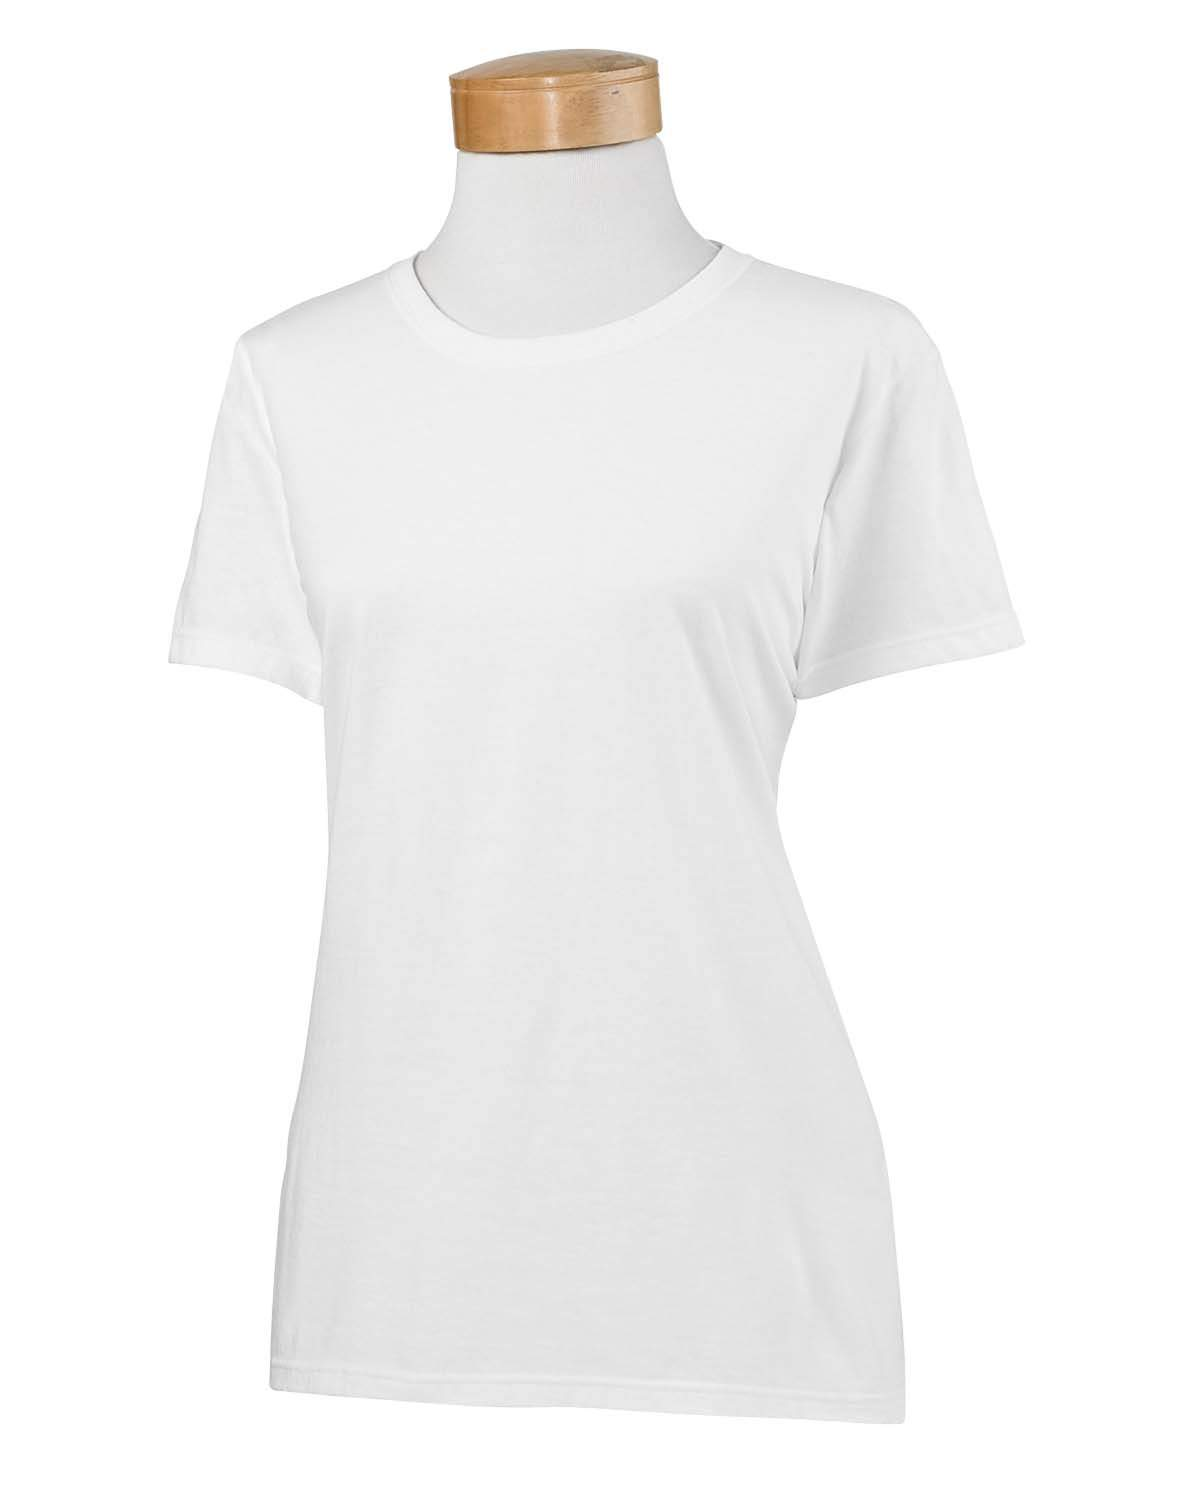 Ladies' Cotton 5.3 oz. Missy Fit T-Shirt